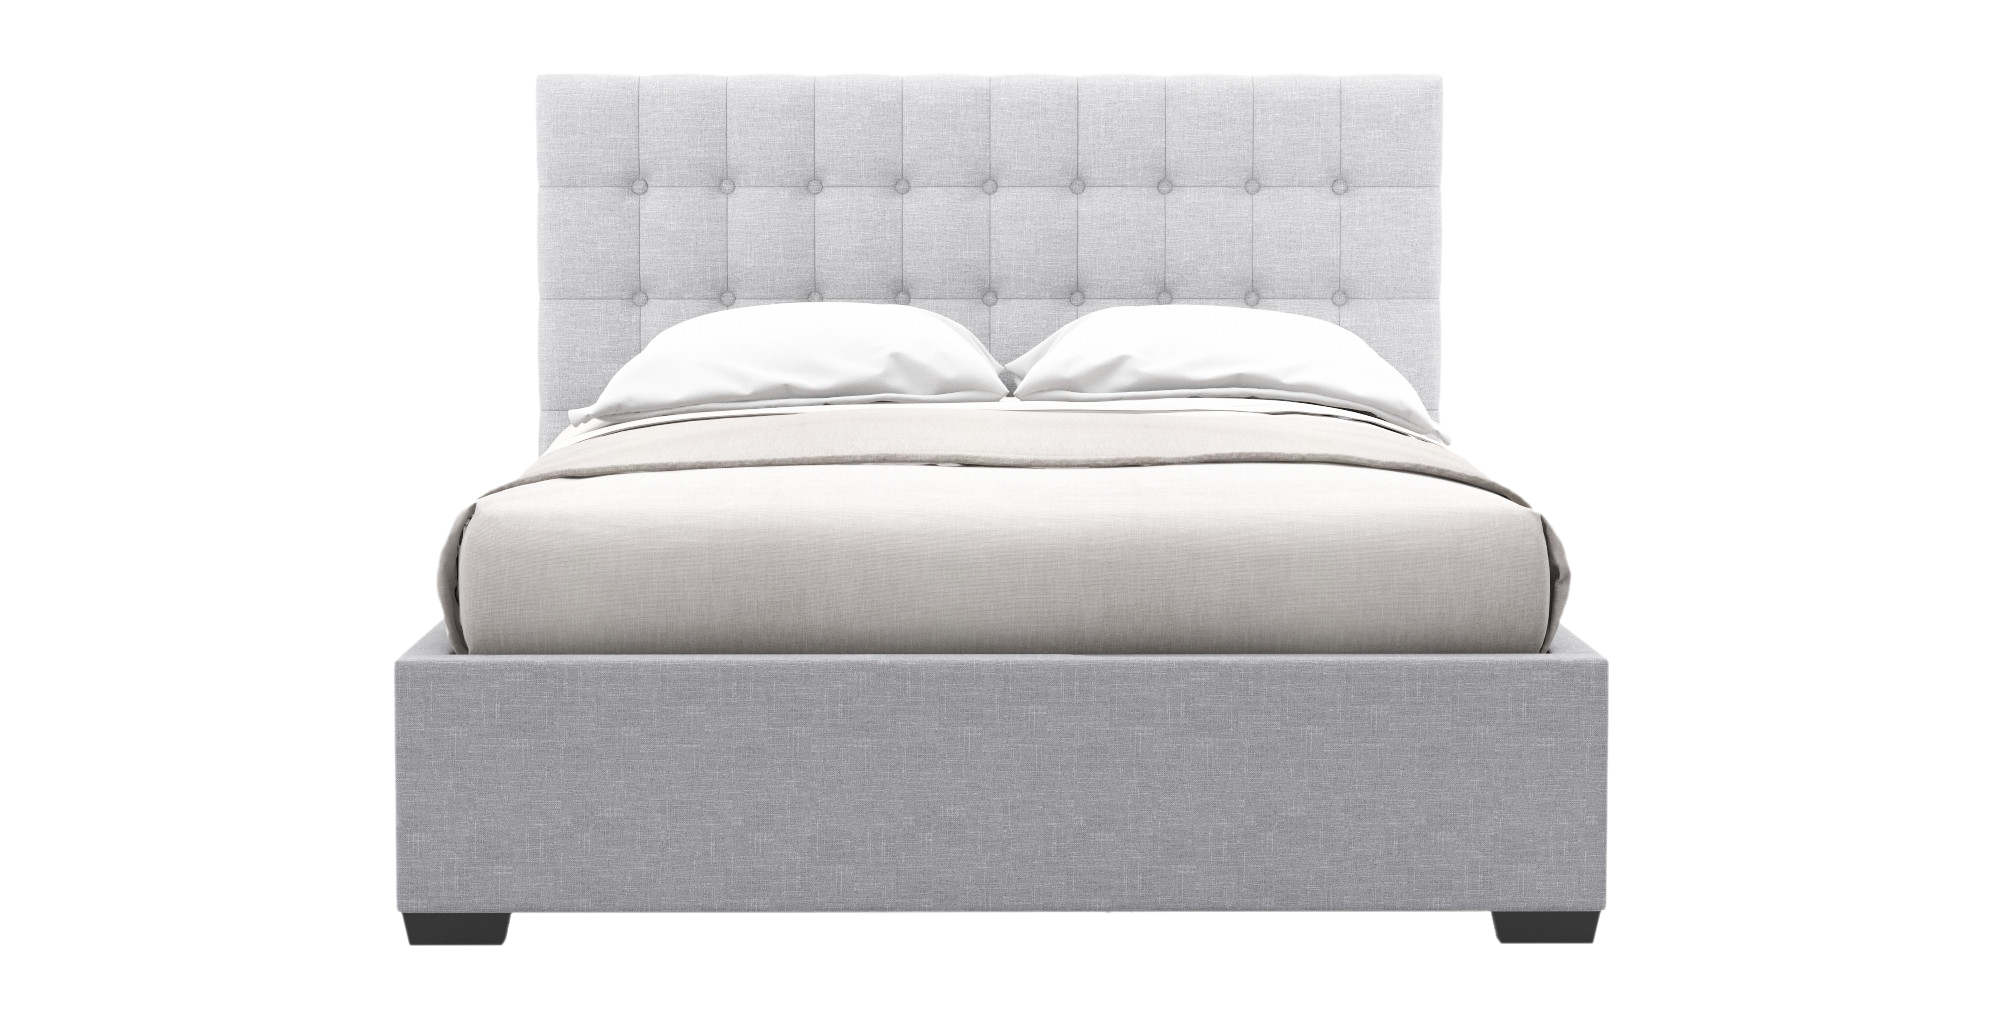 buy leia gas lift queen size bed frame online australia #19105